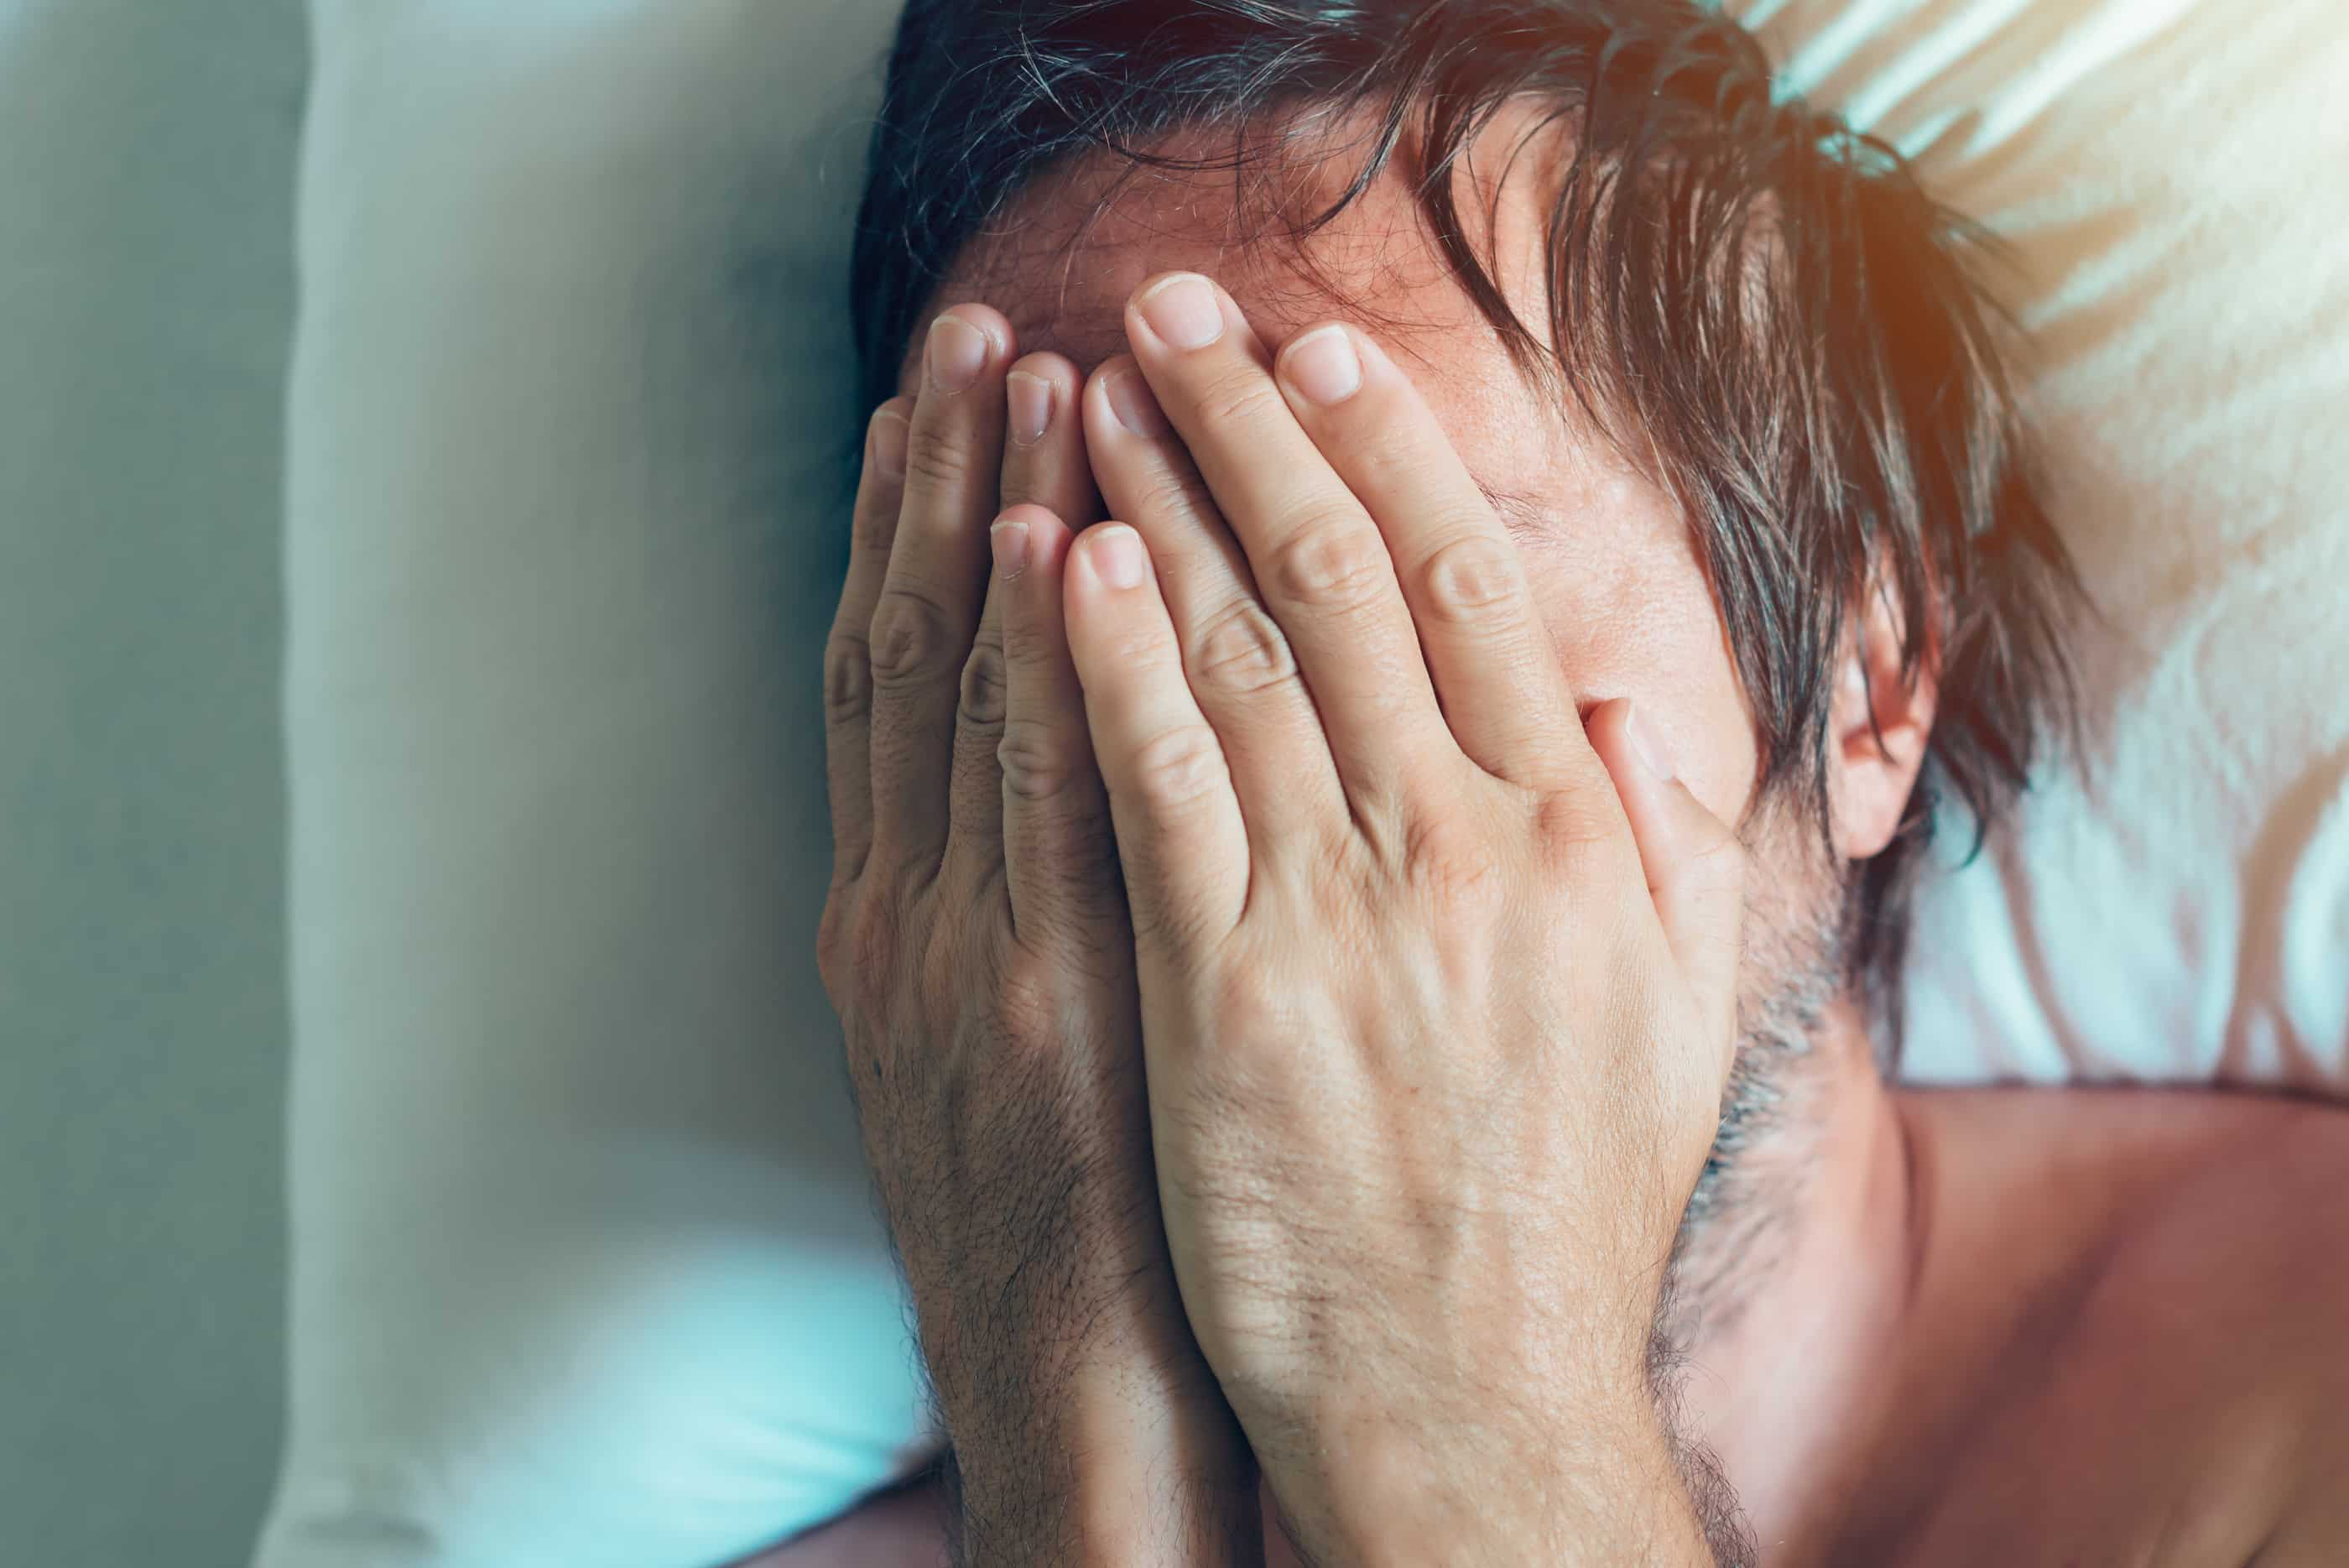 Man holding his face while suffering from opioid withdrawal